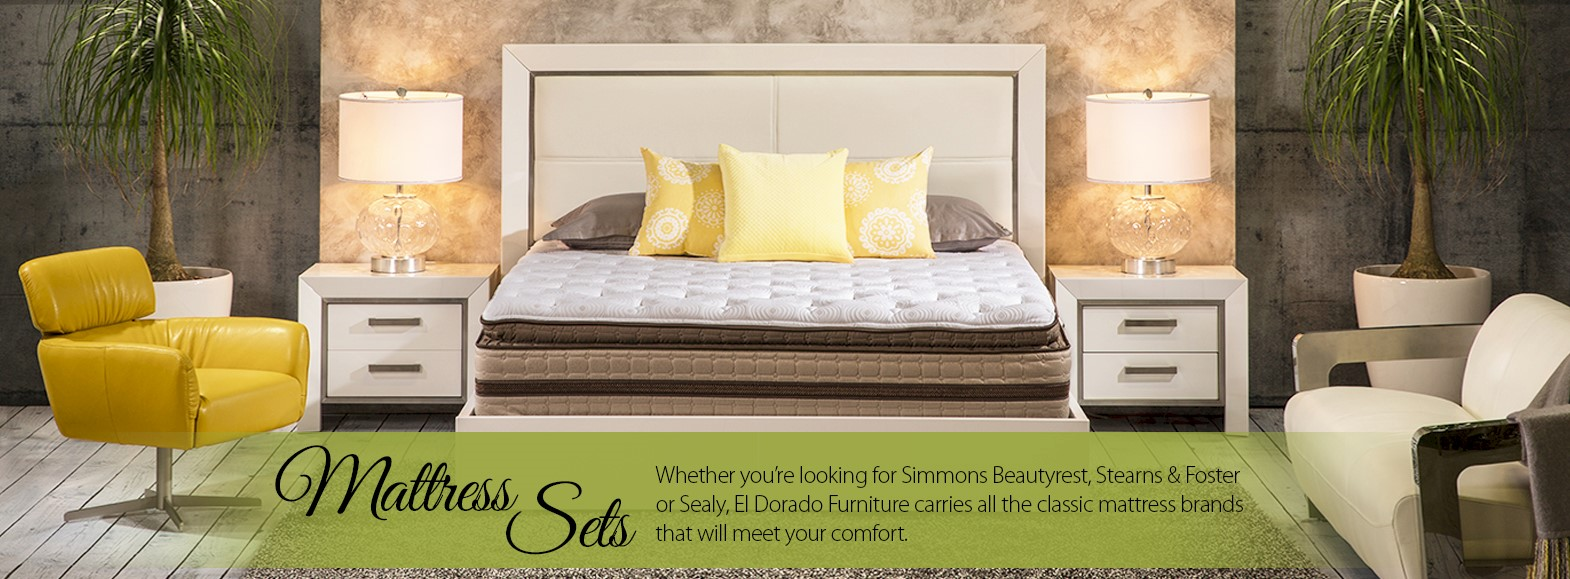 MATTRESS SETS WHETHER YOU'RE LOOKING FOR SIMMONS BEAUTYREST, STEARNS & FOSTER OR SEALY, EL DORADO FURNITURE CARRIES ALL THE CLASSIC MATTRESS BRANDS THAT WILL MEET YOUR COMFORT.